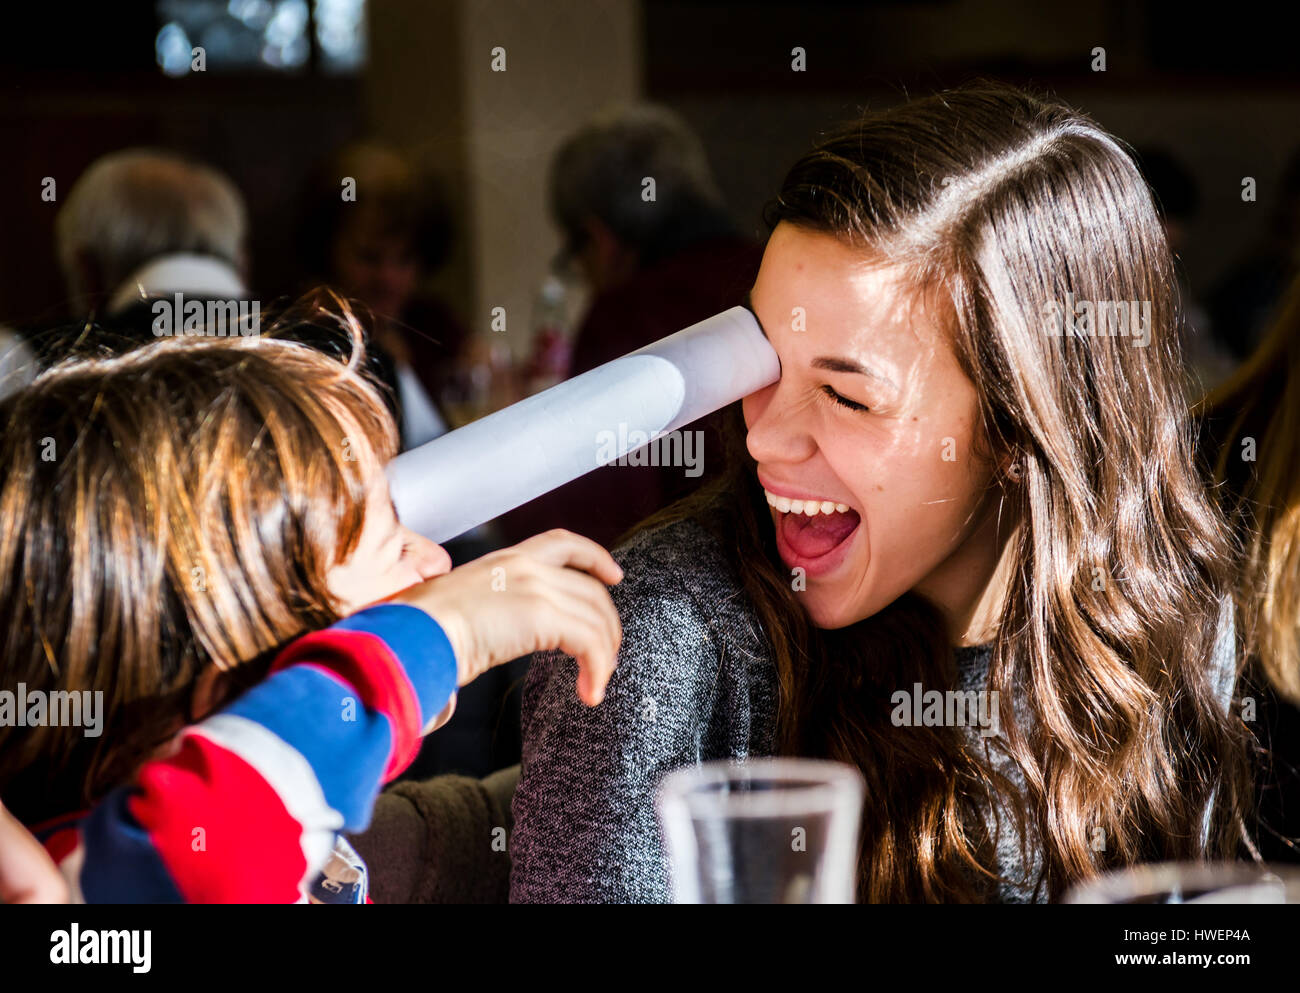 Young woman and boy looking at each other through rolled paper in cafe - Stock Image